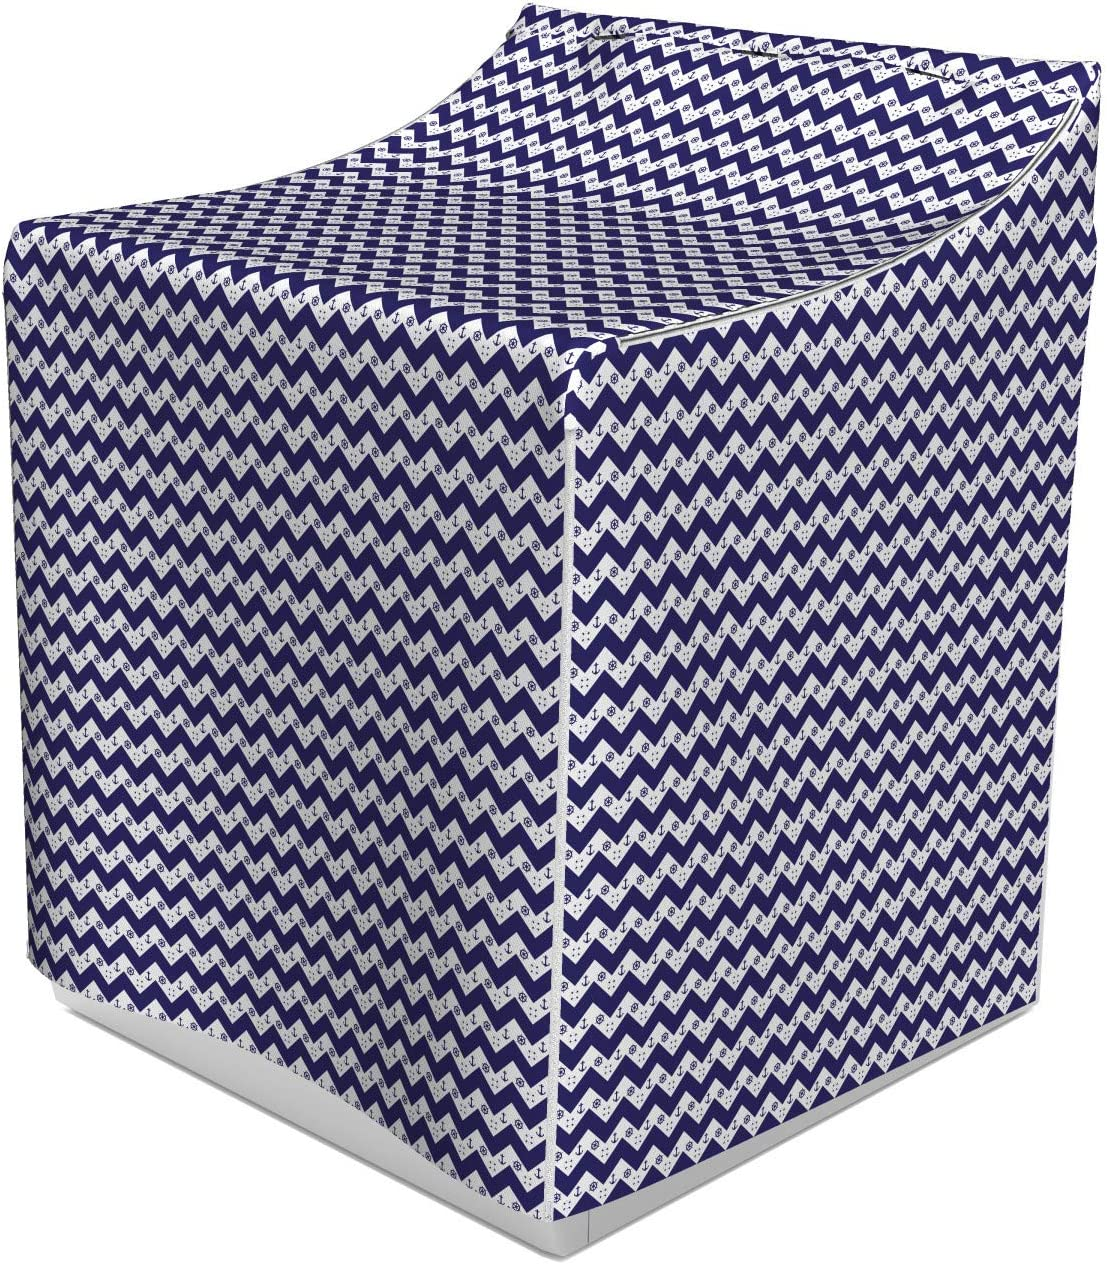 "B07Q2MT5X2 Lunarable Navy Washer Cover, Zig Zag Lines Chevron Geometrical Image Design with Anchors Dots Artwork Image, Decorative Accent for Laundromats, 29"" x 28"" x 40"", Navy Blue 81irLM0nuGL"